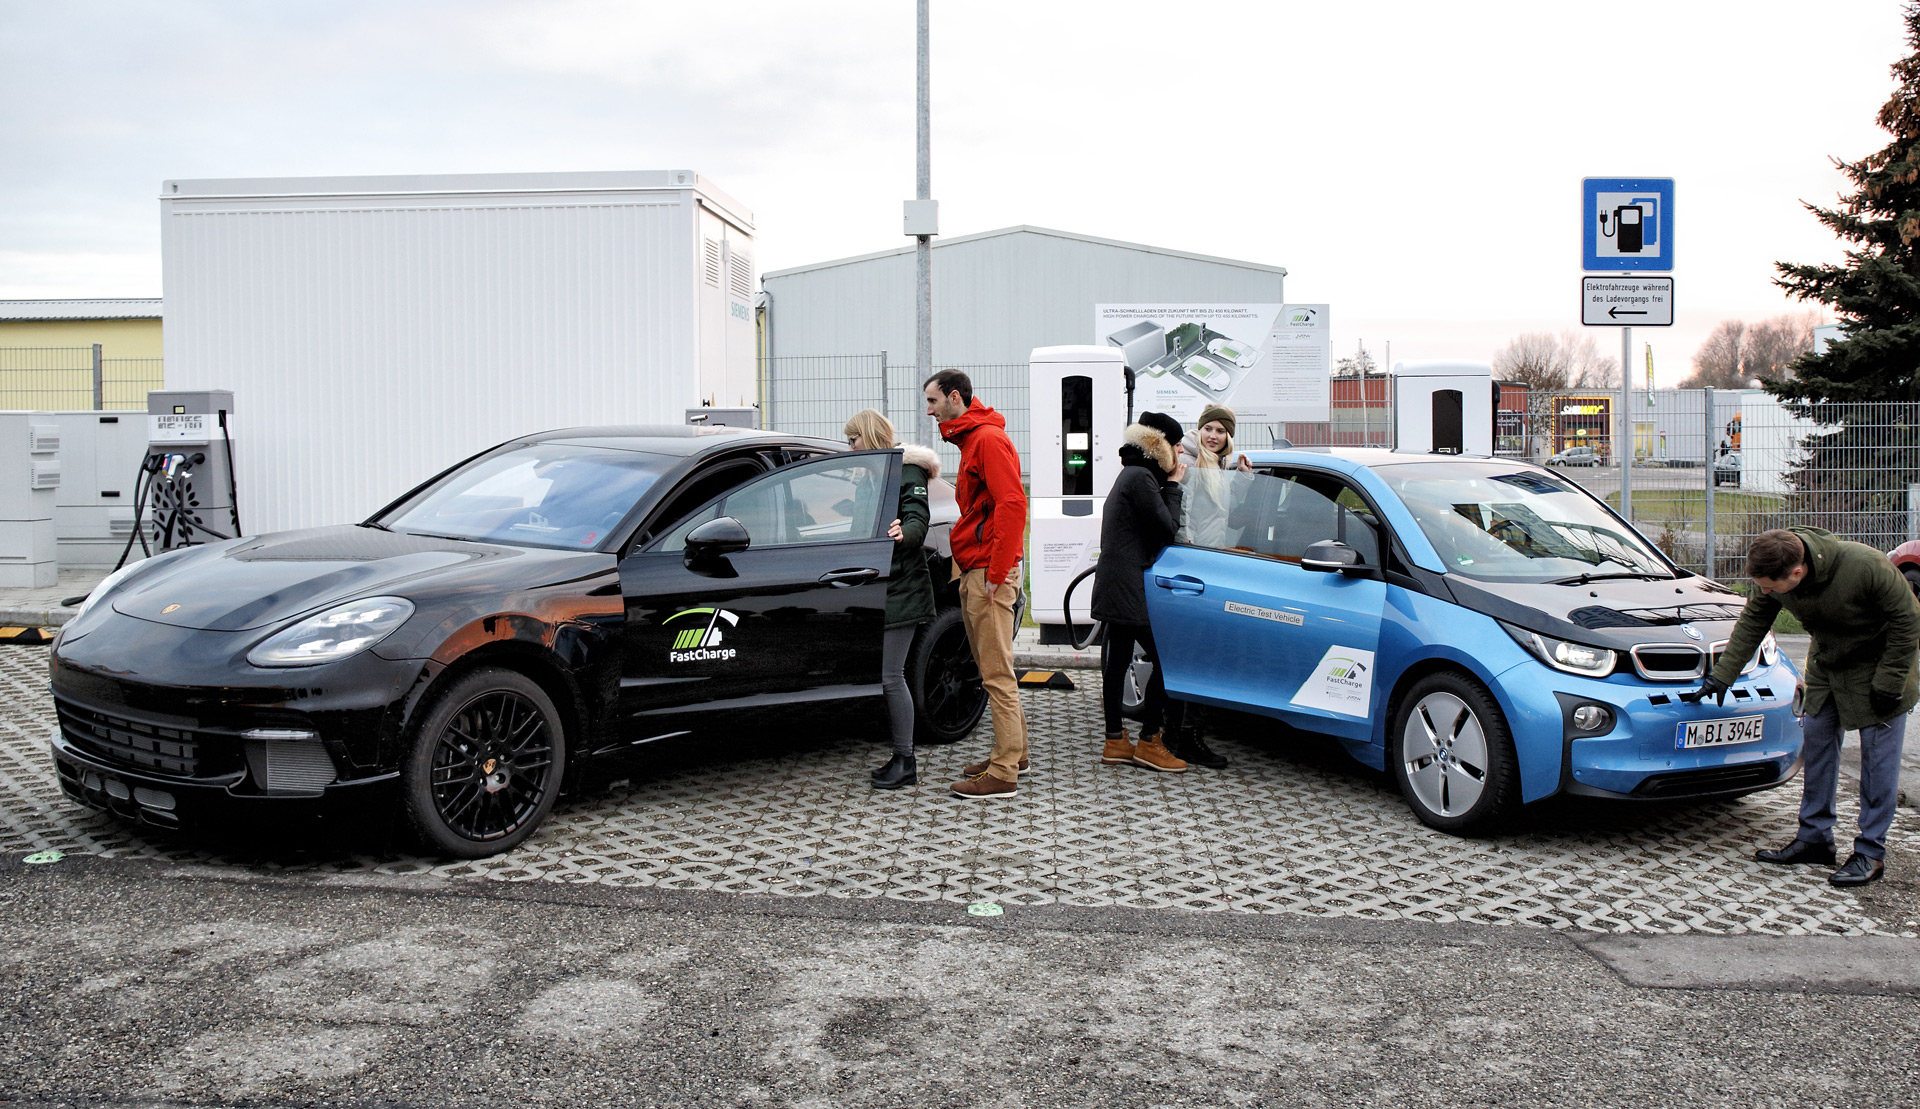 Bmw And Porsche Demo 450 Kw Charger Capable Of Adding 62 Miles In 3 Minutes